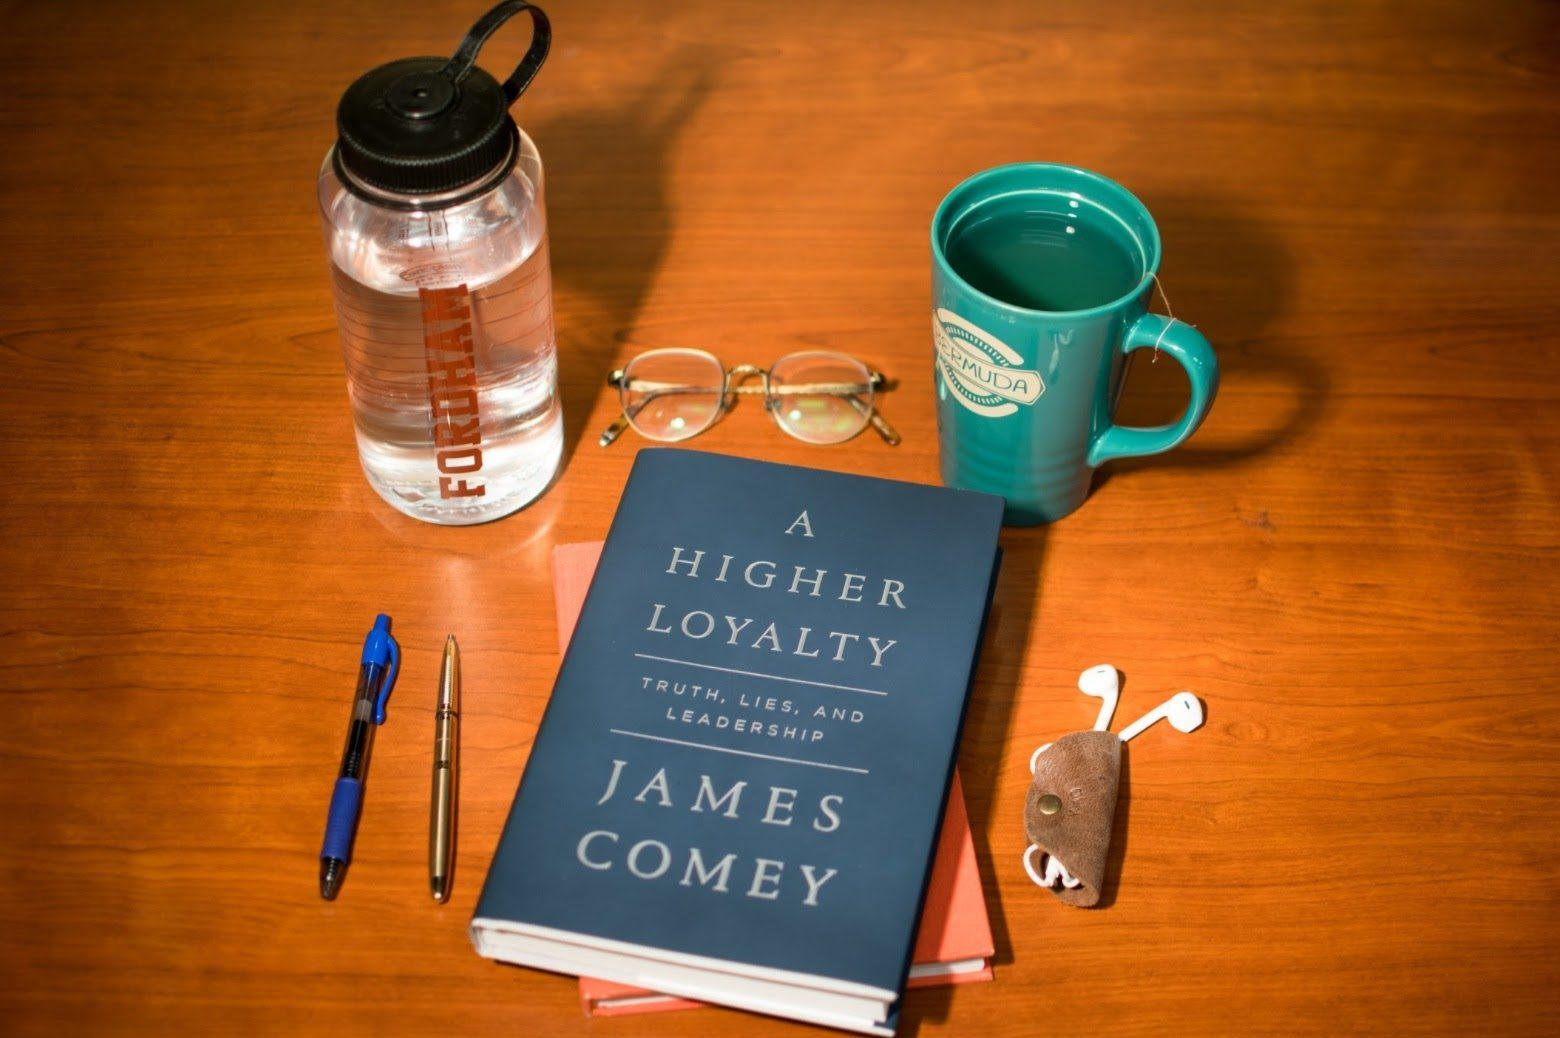 James Comey's new book reflects on his years as the director of the FBI. (ANDREW BEECHER/THE OBSERVER)